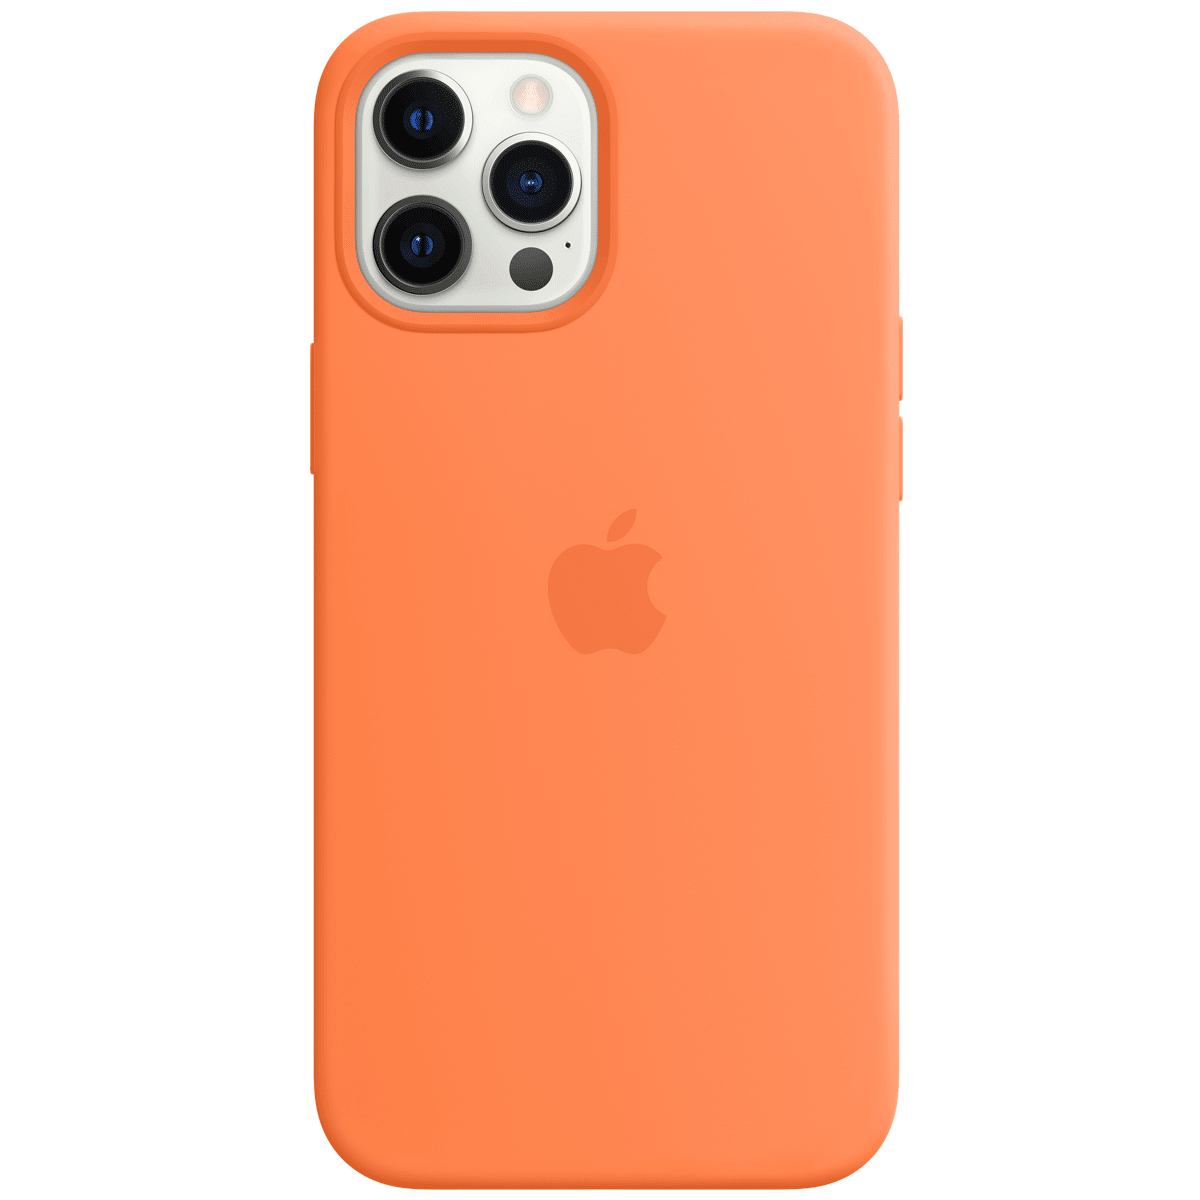 Apple Silicone Back Case For iPhone 12 Pro Max (Magsafe Charging Accessibility, MHL83ZM/A, Kumquat)_1